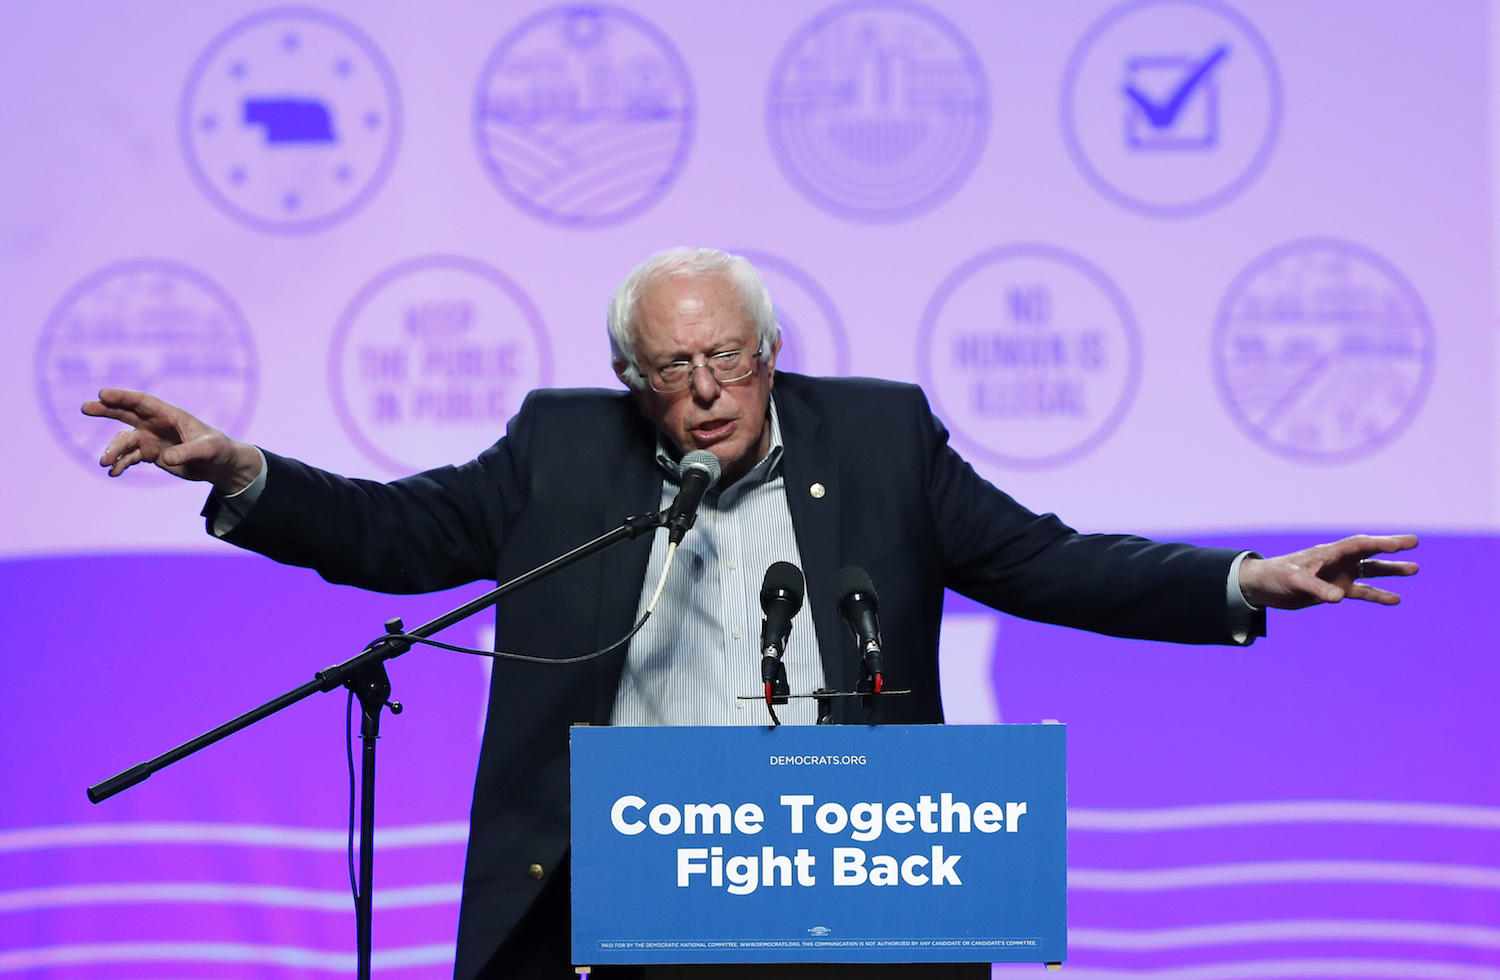 Bernie Sanders announces he's running again